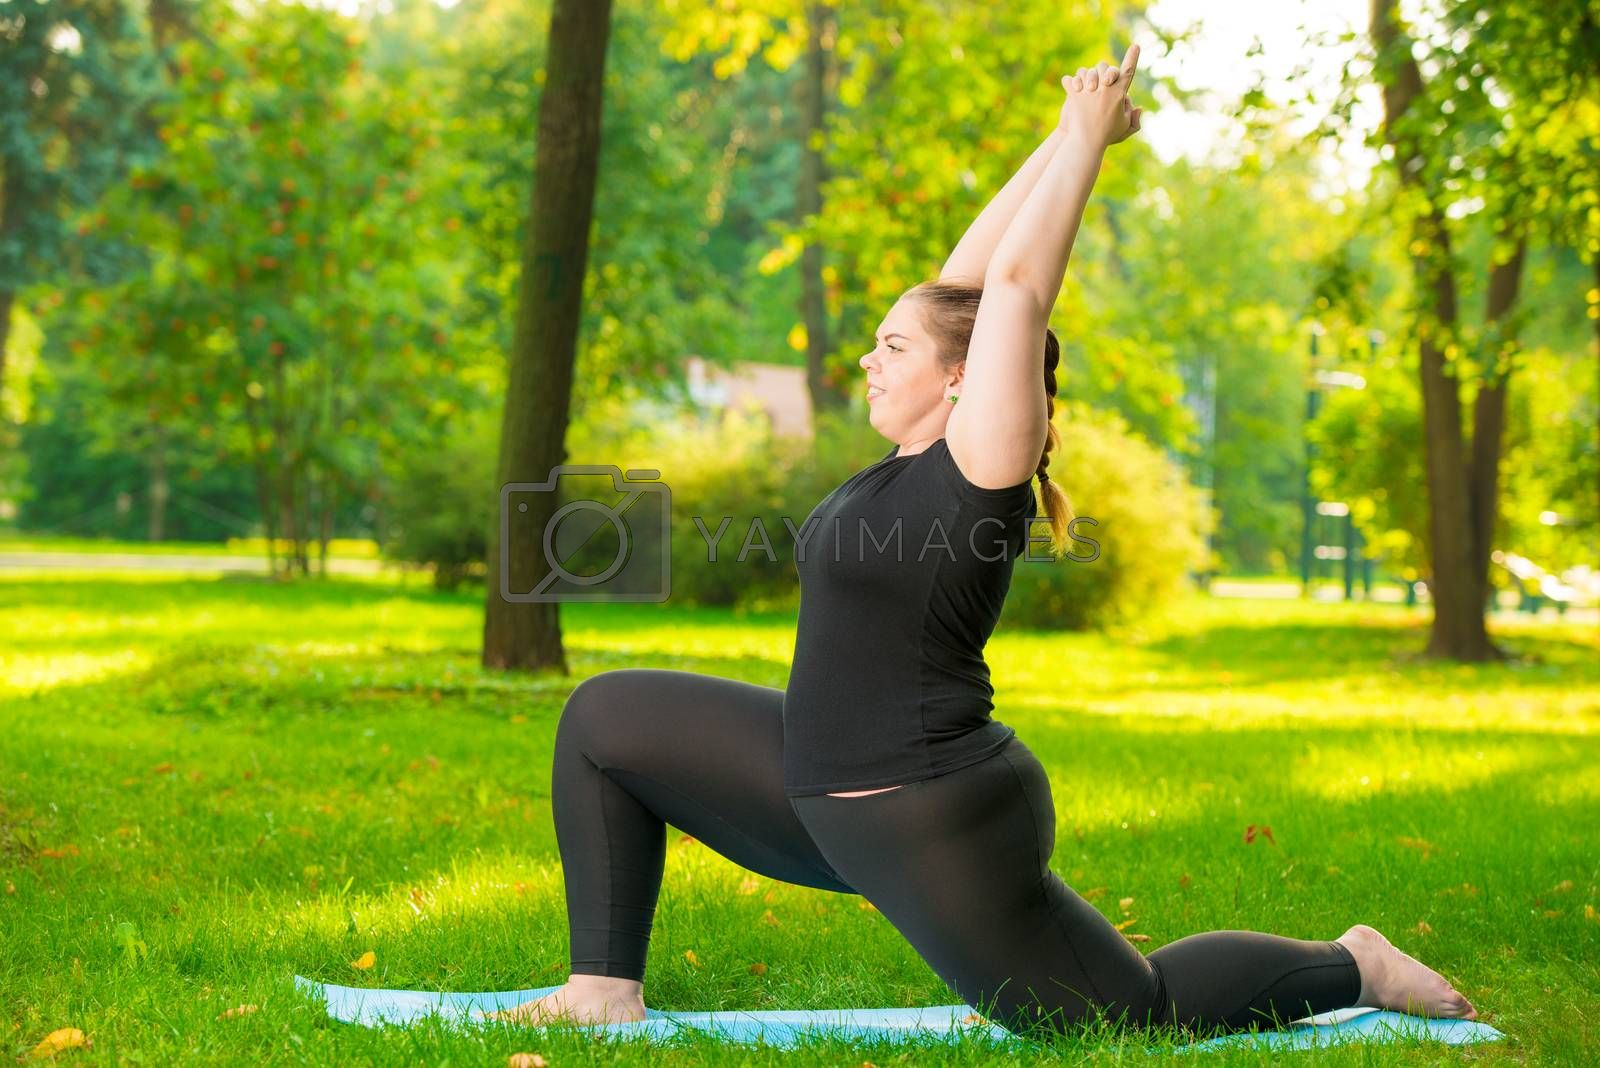 girl in the park is engaged in his figure, yoga exercises in the by Labunskiy K.